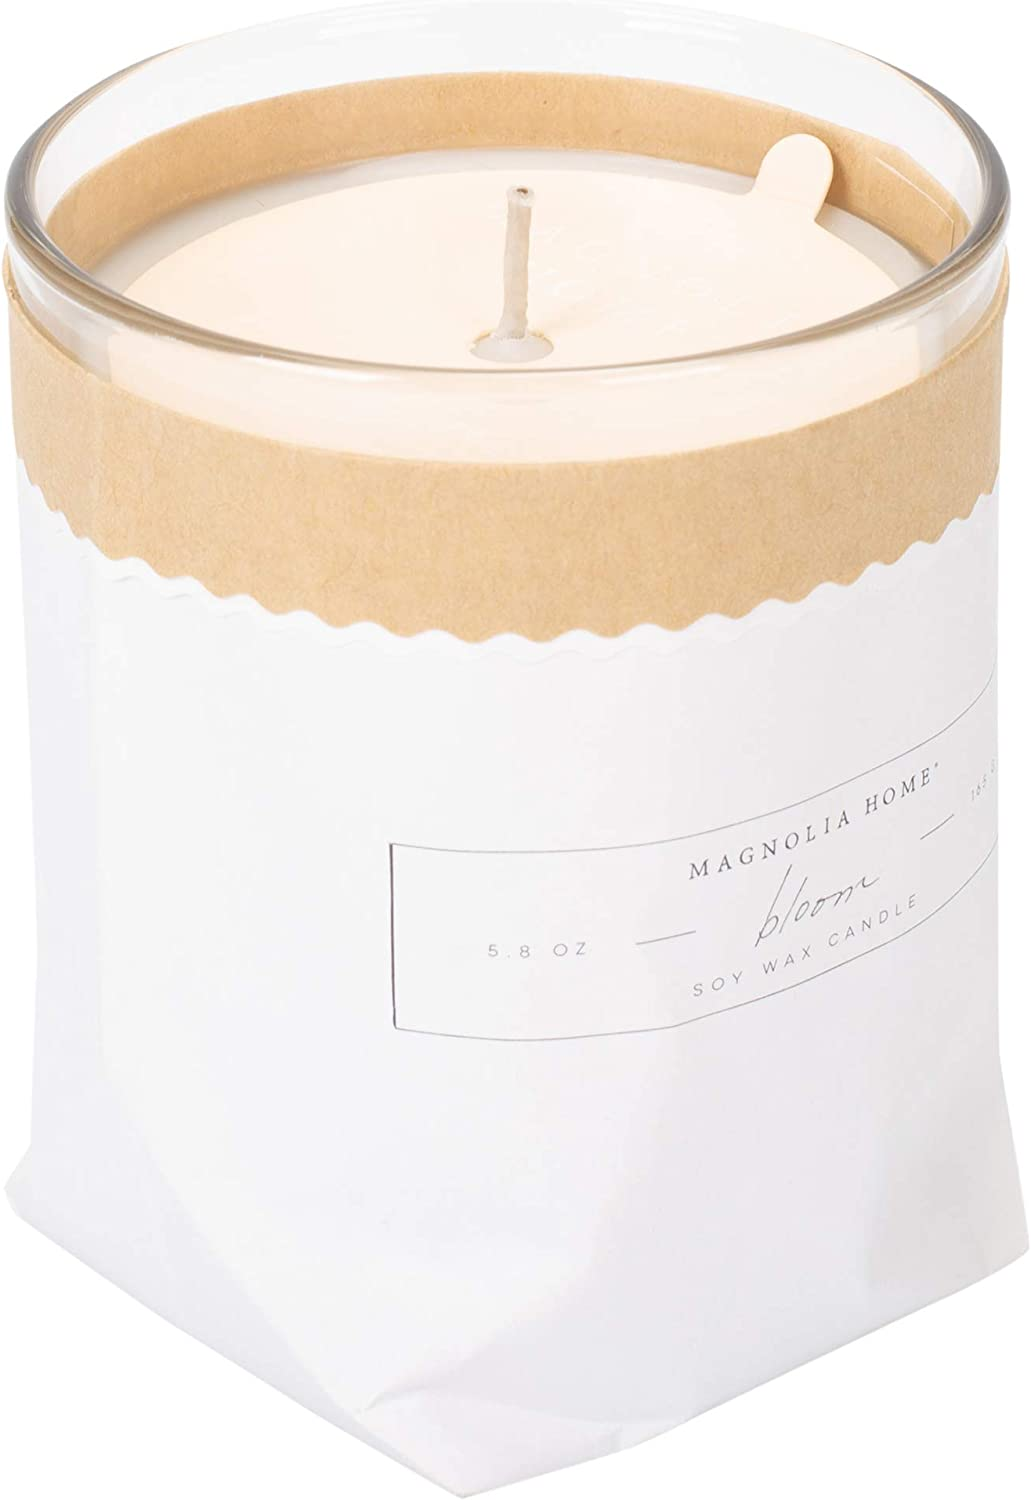 Bloom Scented 5.8 ounce Soy Wax Kraft-Textured Candle by Joanna Gaines - Illume